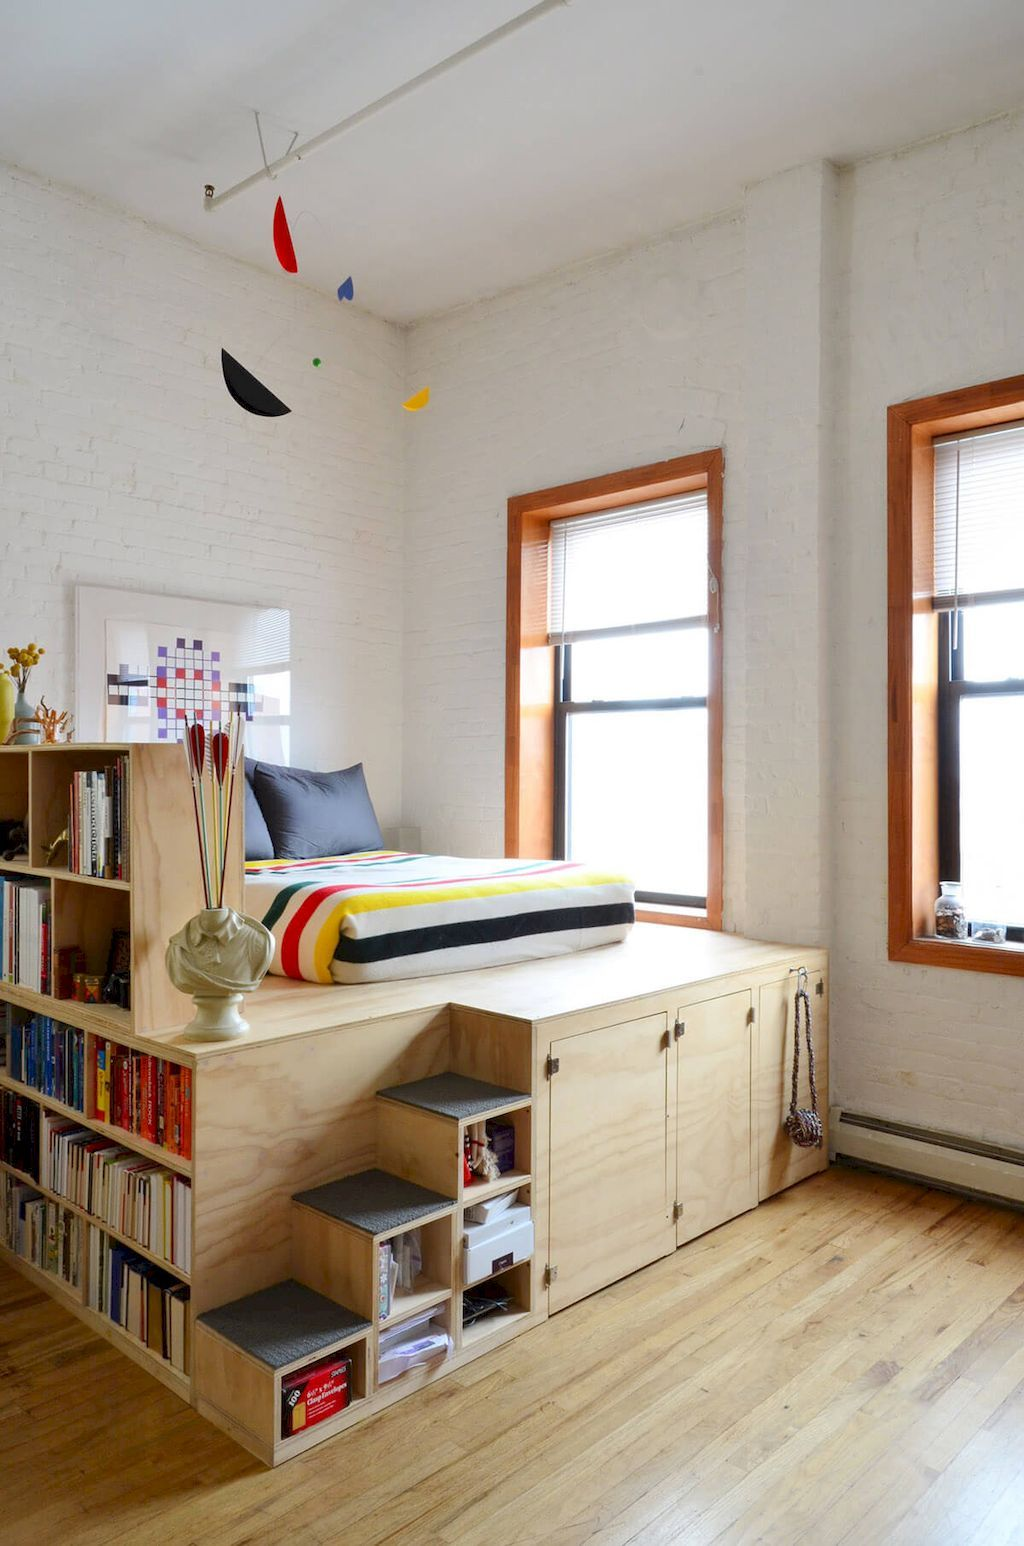 Loft bed storage stairs   Simple DIY First Apartment Storage Ideas on A Budget  Simple diy